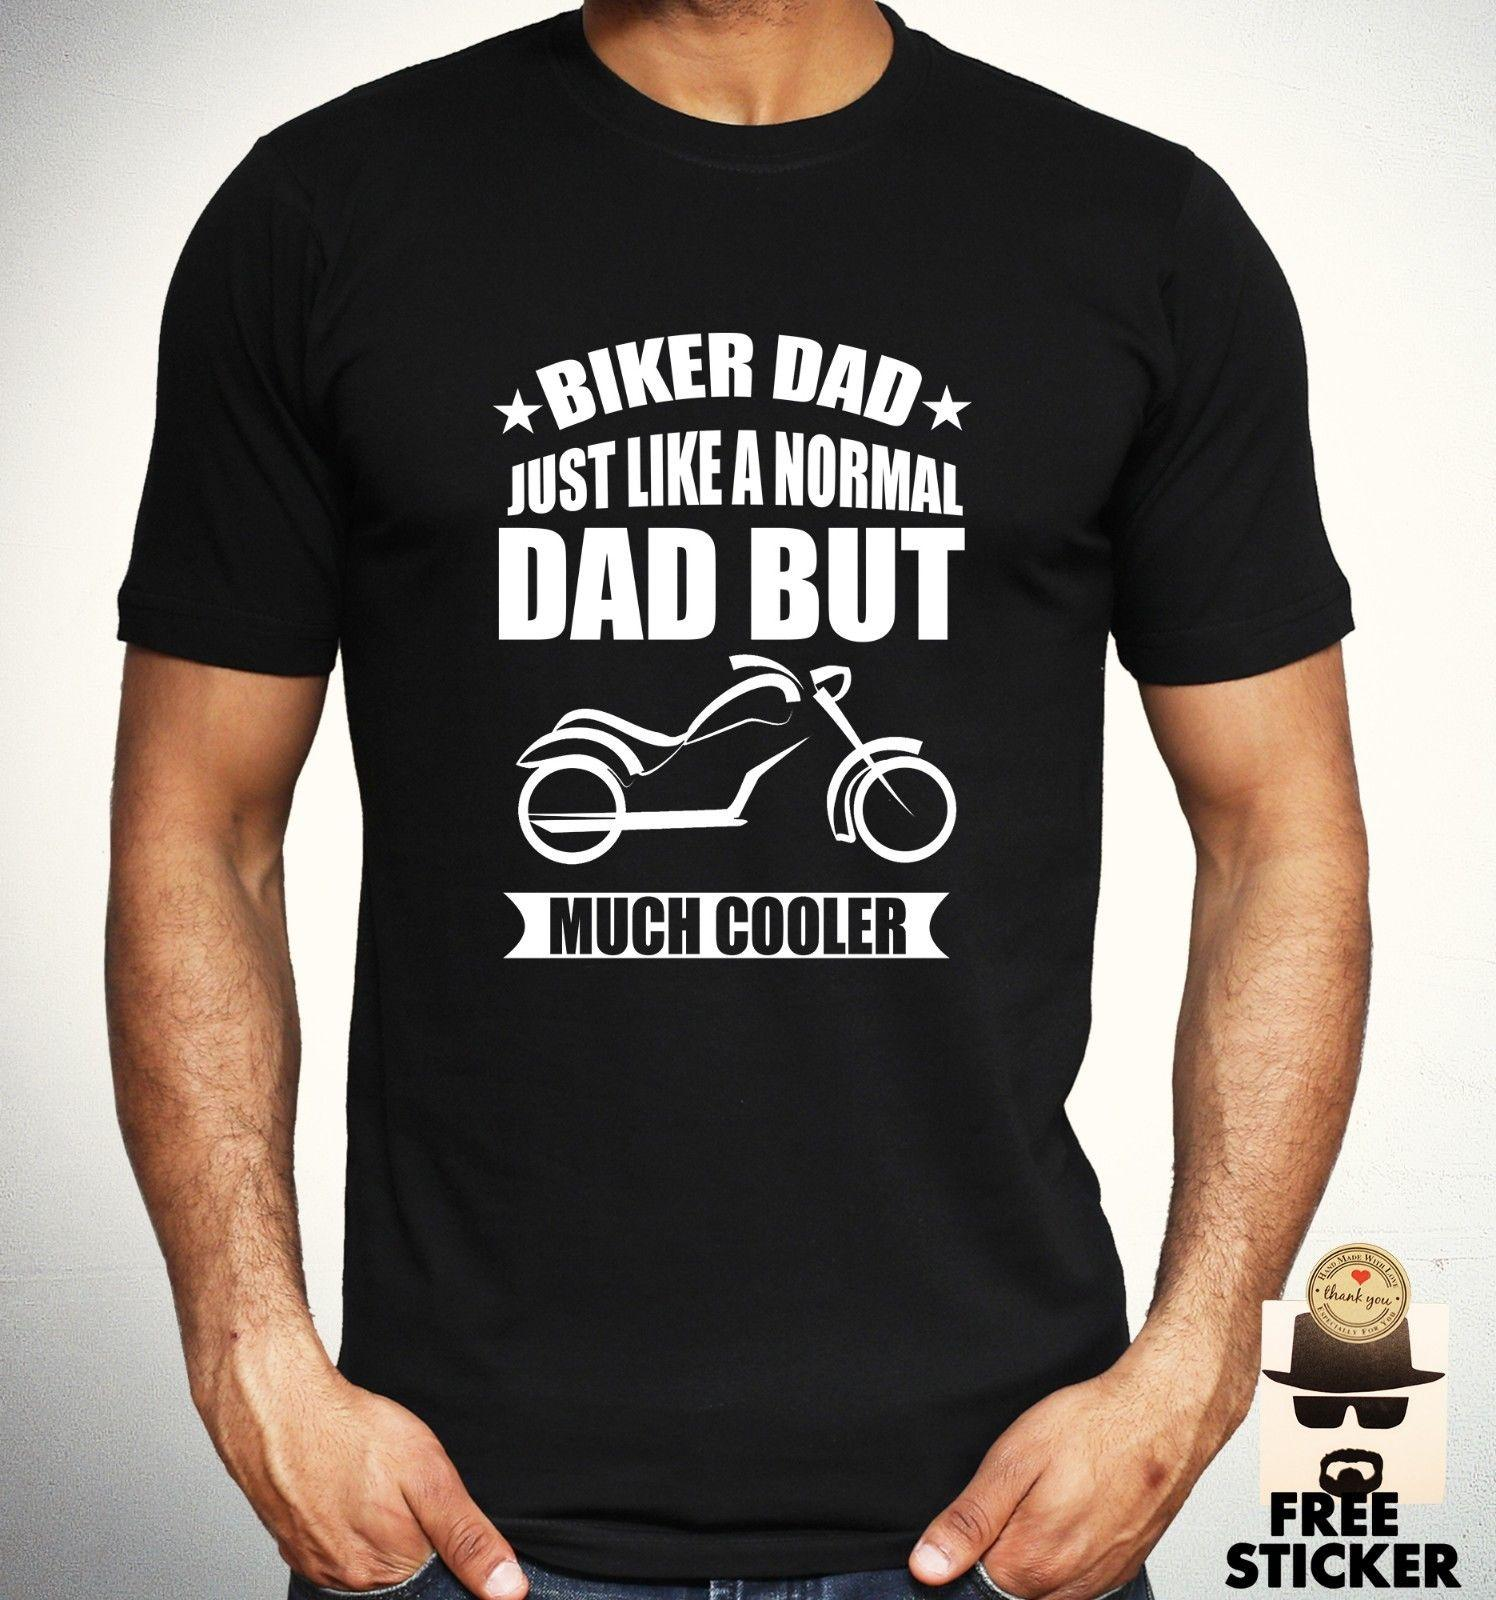 Biker Dad T Shirt Motorcycle Cool Father Birthday Present Gift Top Mens S M L XL The Who Shirts Designs From Viptshirt28 1117